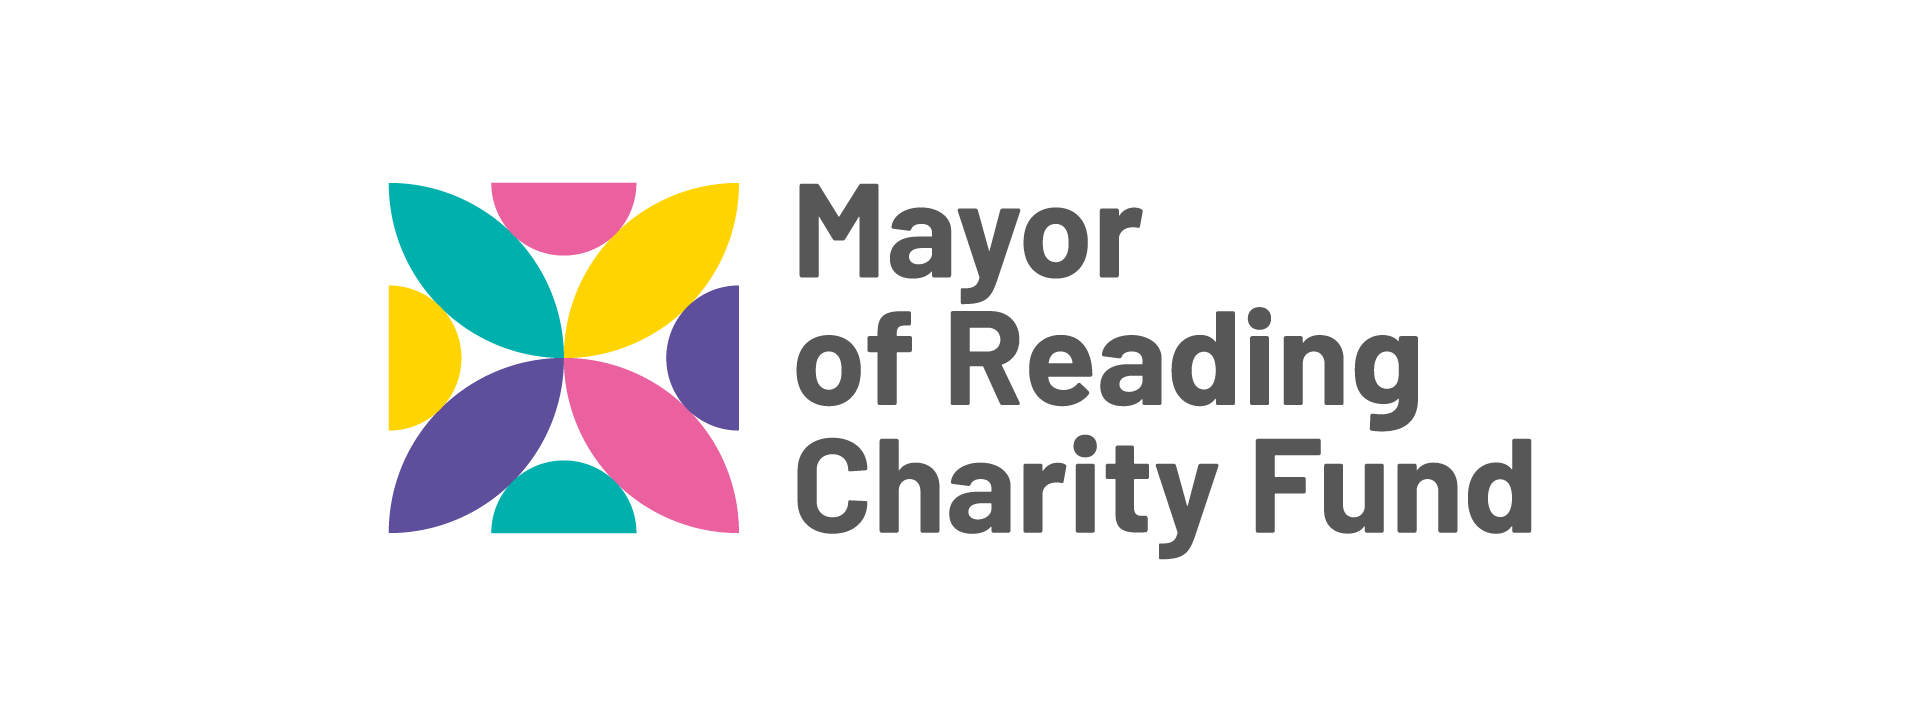 Mayor of Reading Charity Fund logo